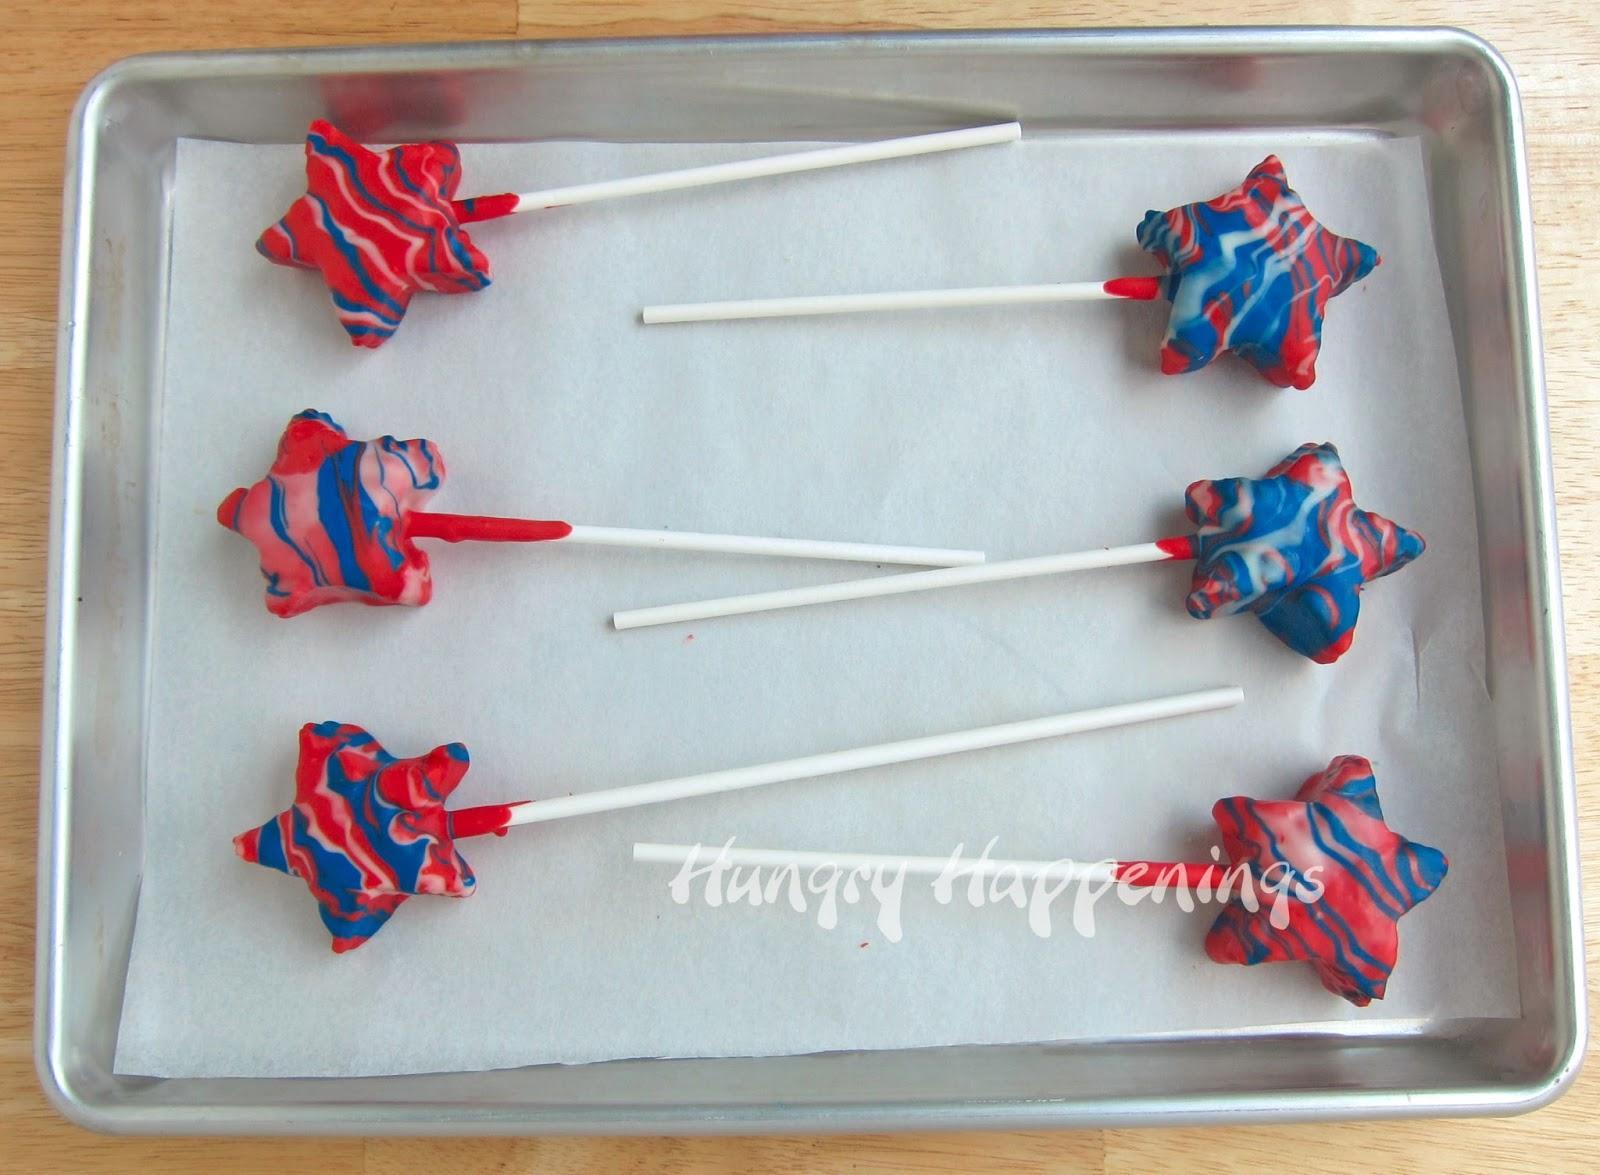 Home handmade candies chocolate dipped rice krispy treats 2 - When You Are Finished Dipping You Ll Have A Bowl Filled With Red White And Blue Dribbles Melt It Stir It And You Ll Have Some Purple Candy Coating To